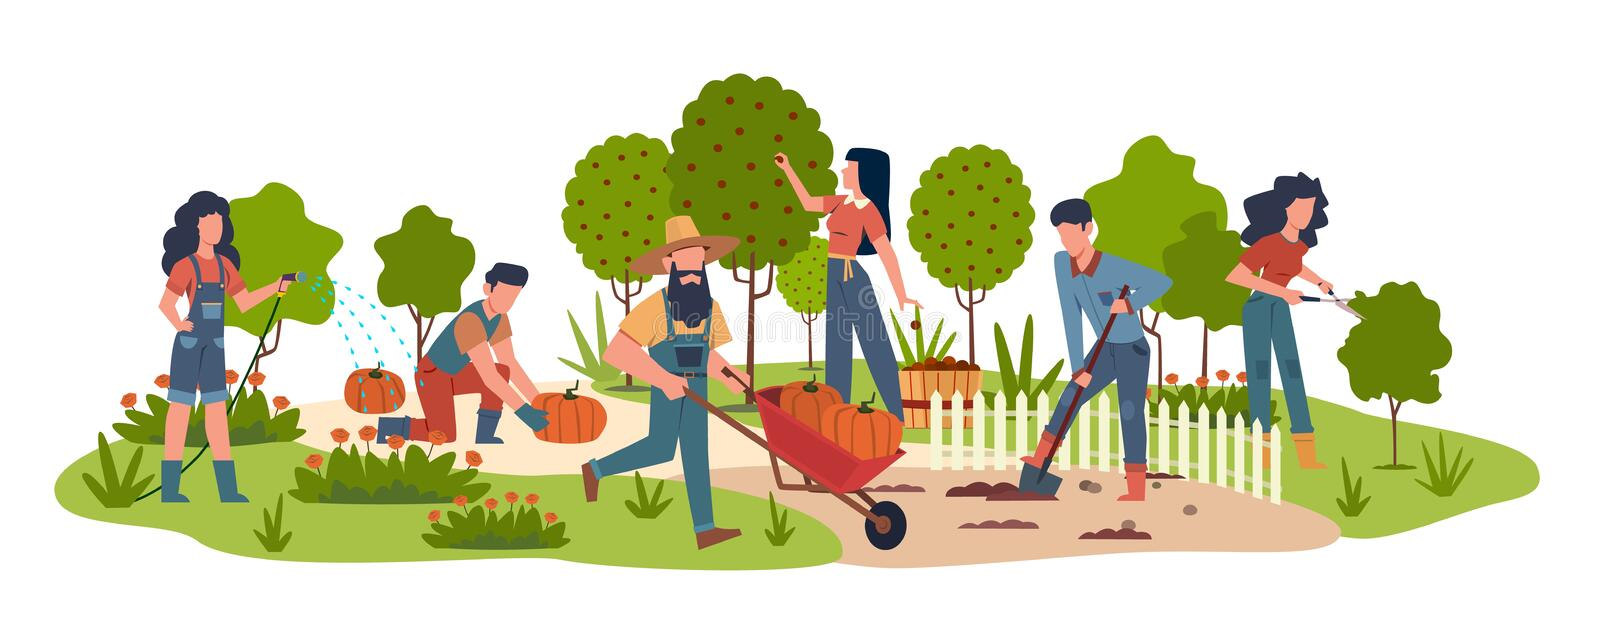 People in garden. Agricultural workers doing farming job harvesting with garden tools. Collecting fruits, watering. Vegetables vector seasonal work background vector illustration